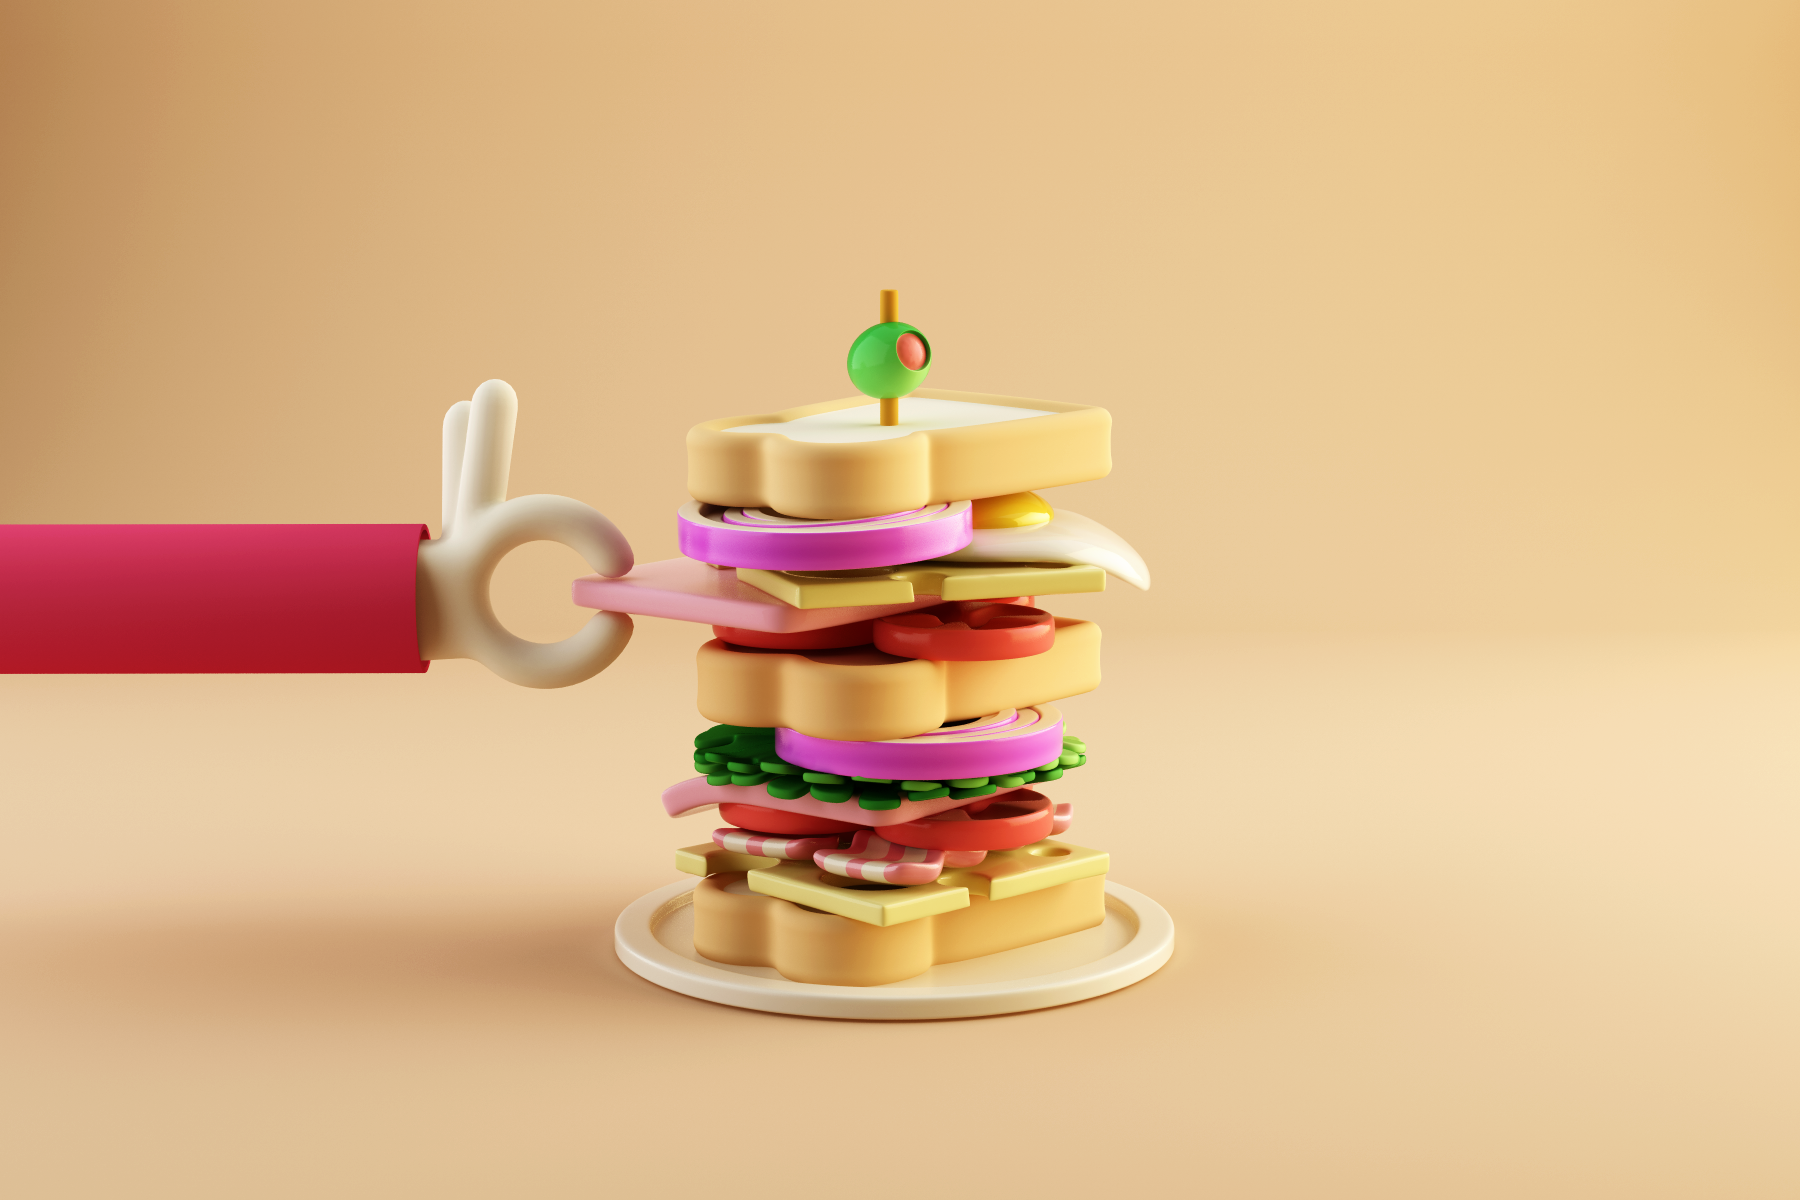 Sandwich_Ver01_StyleFrame03.png